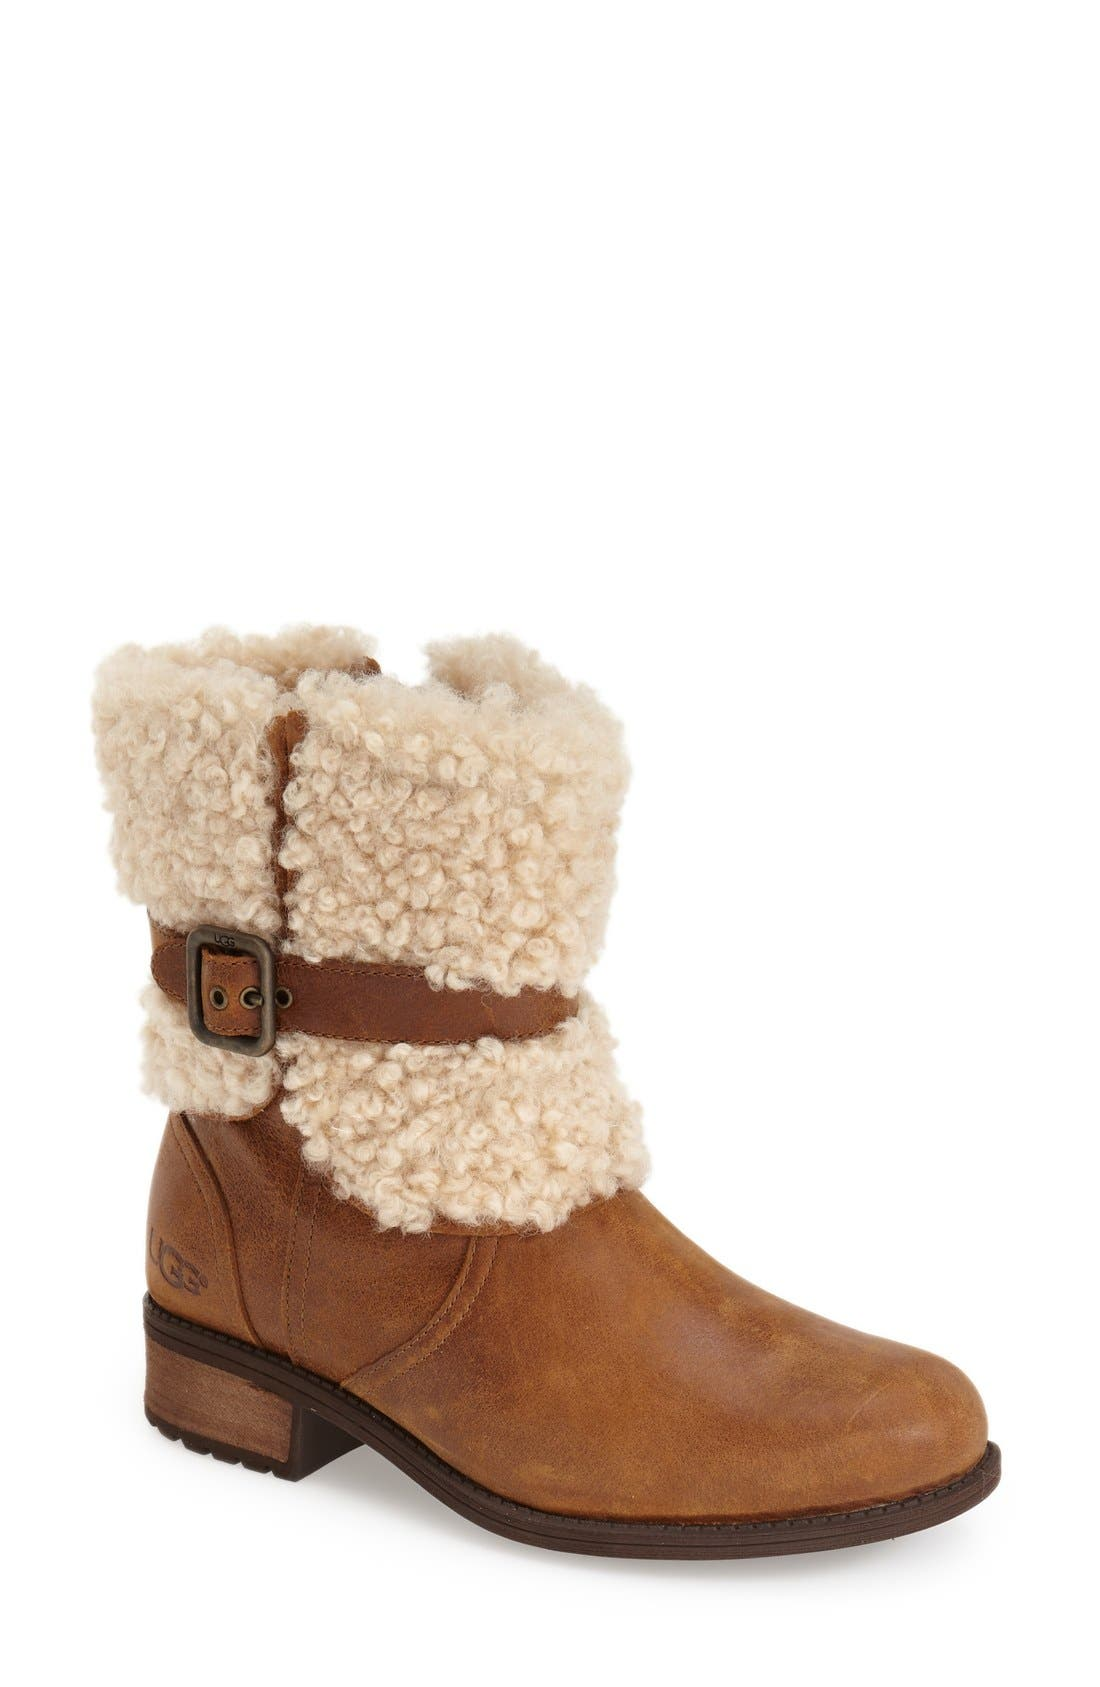 Alternate Image 1 Selected - UGG® Blayre II Shearling Cuff Bootie (Women)